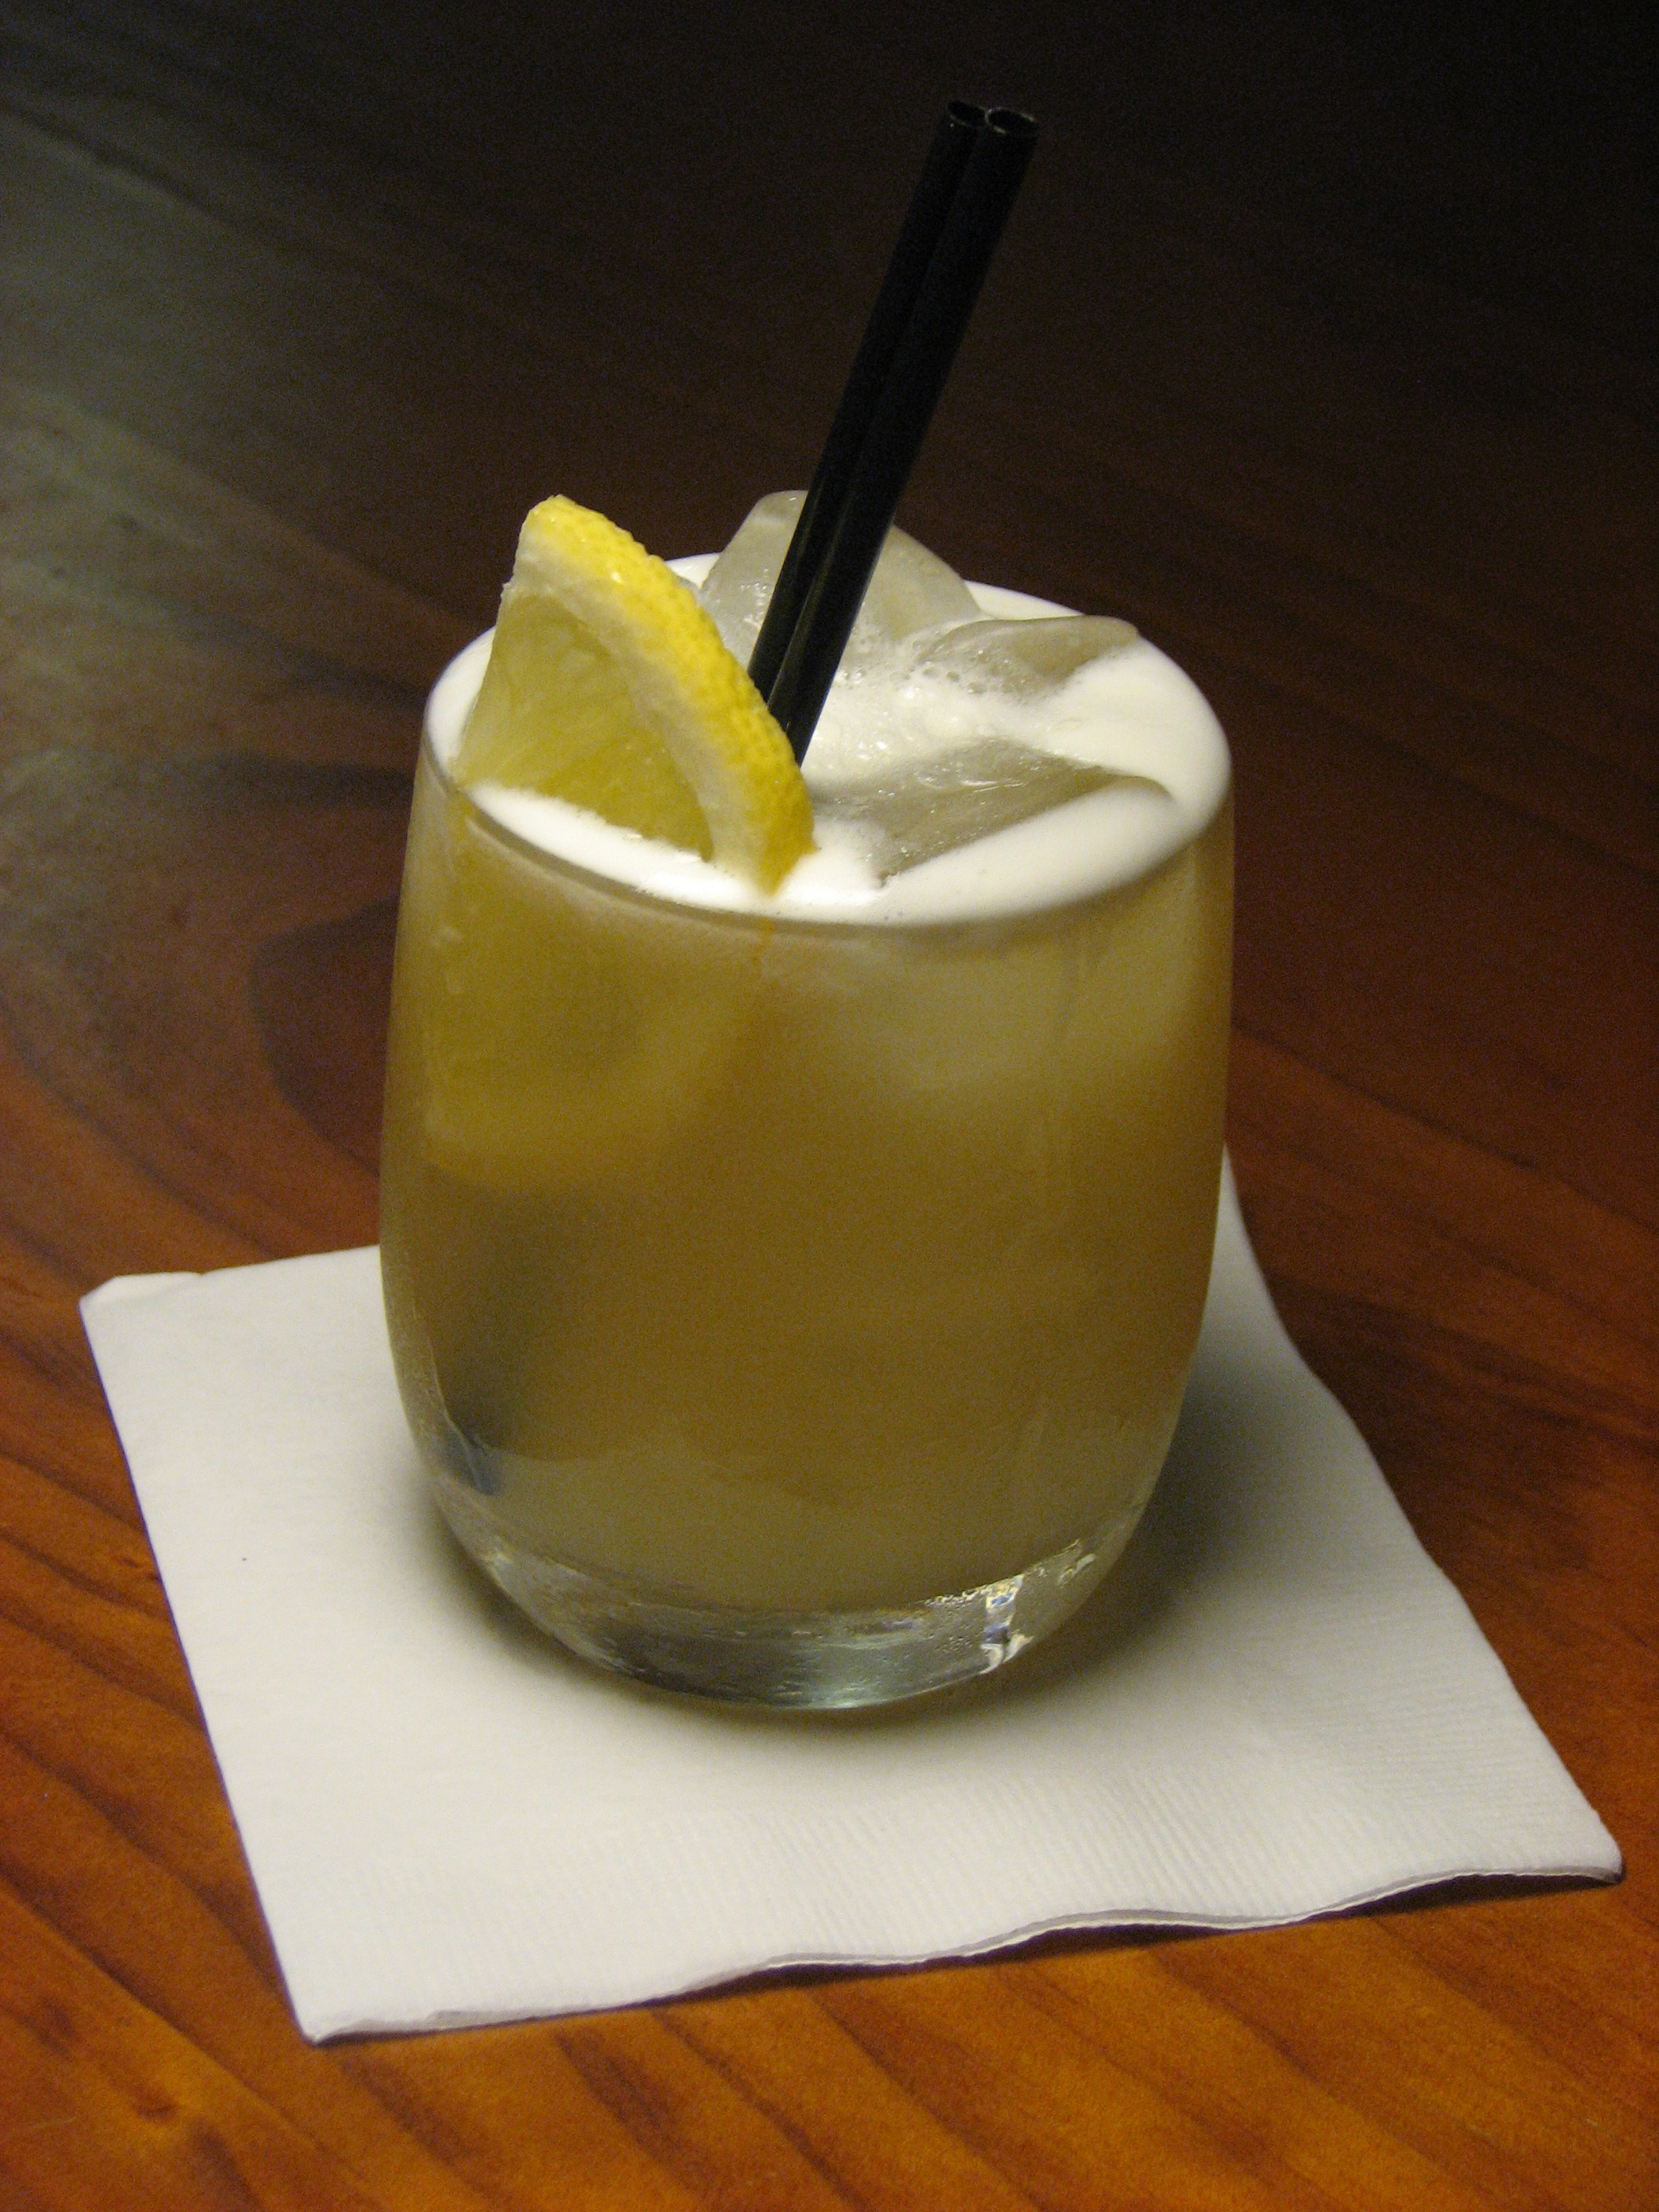 File:Whiskey Sour.jpg - Wikipedia, the free encyclopedia